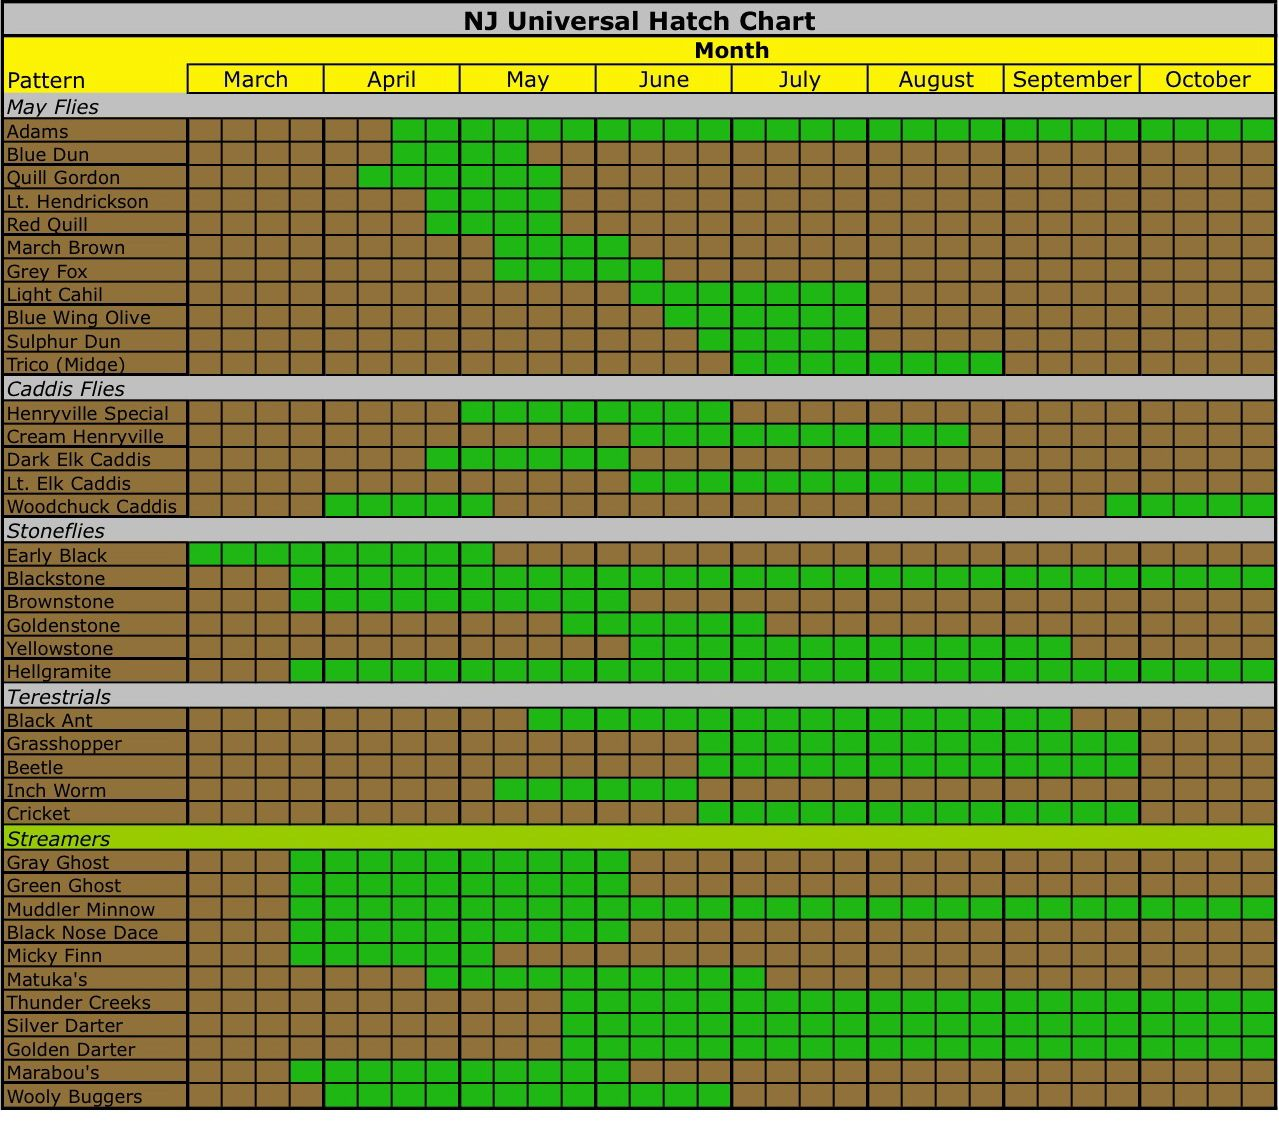 Nj Hatch Chart Moose Knuckle Fly Fishing Caddis Flies Blue Winged Olive Chart